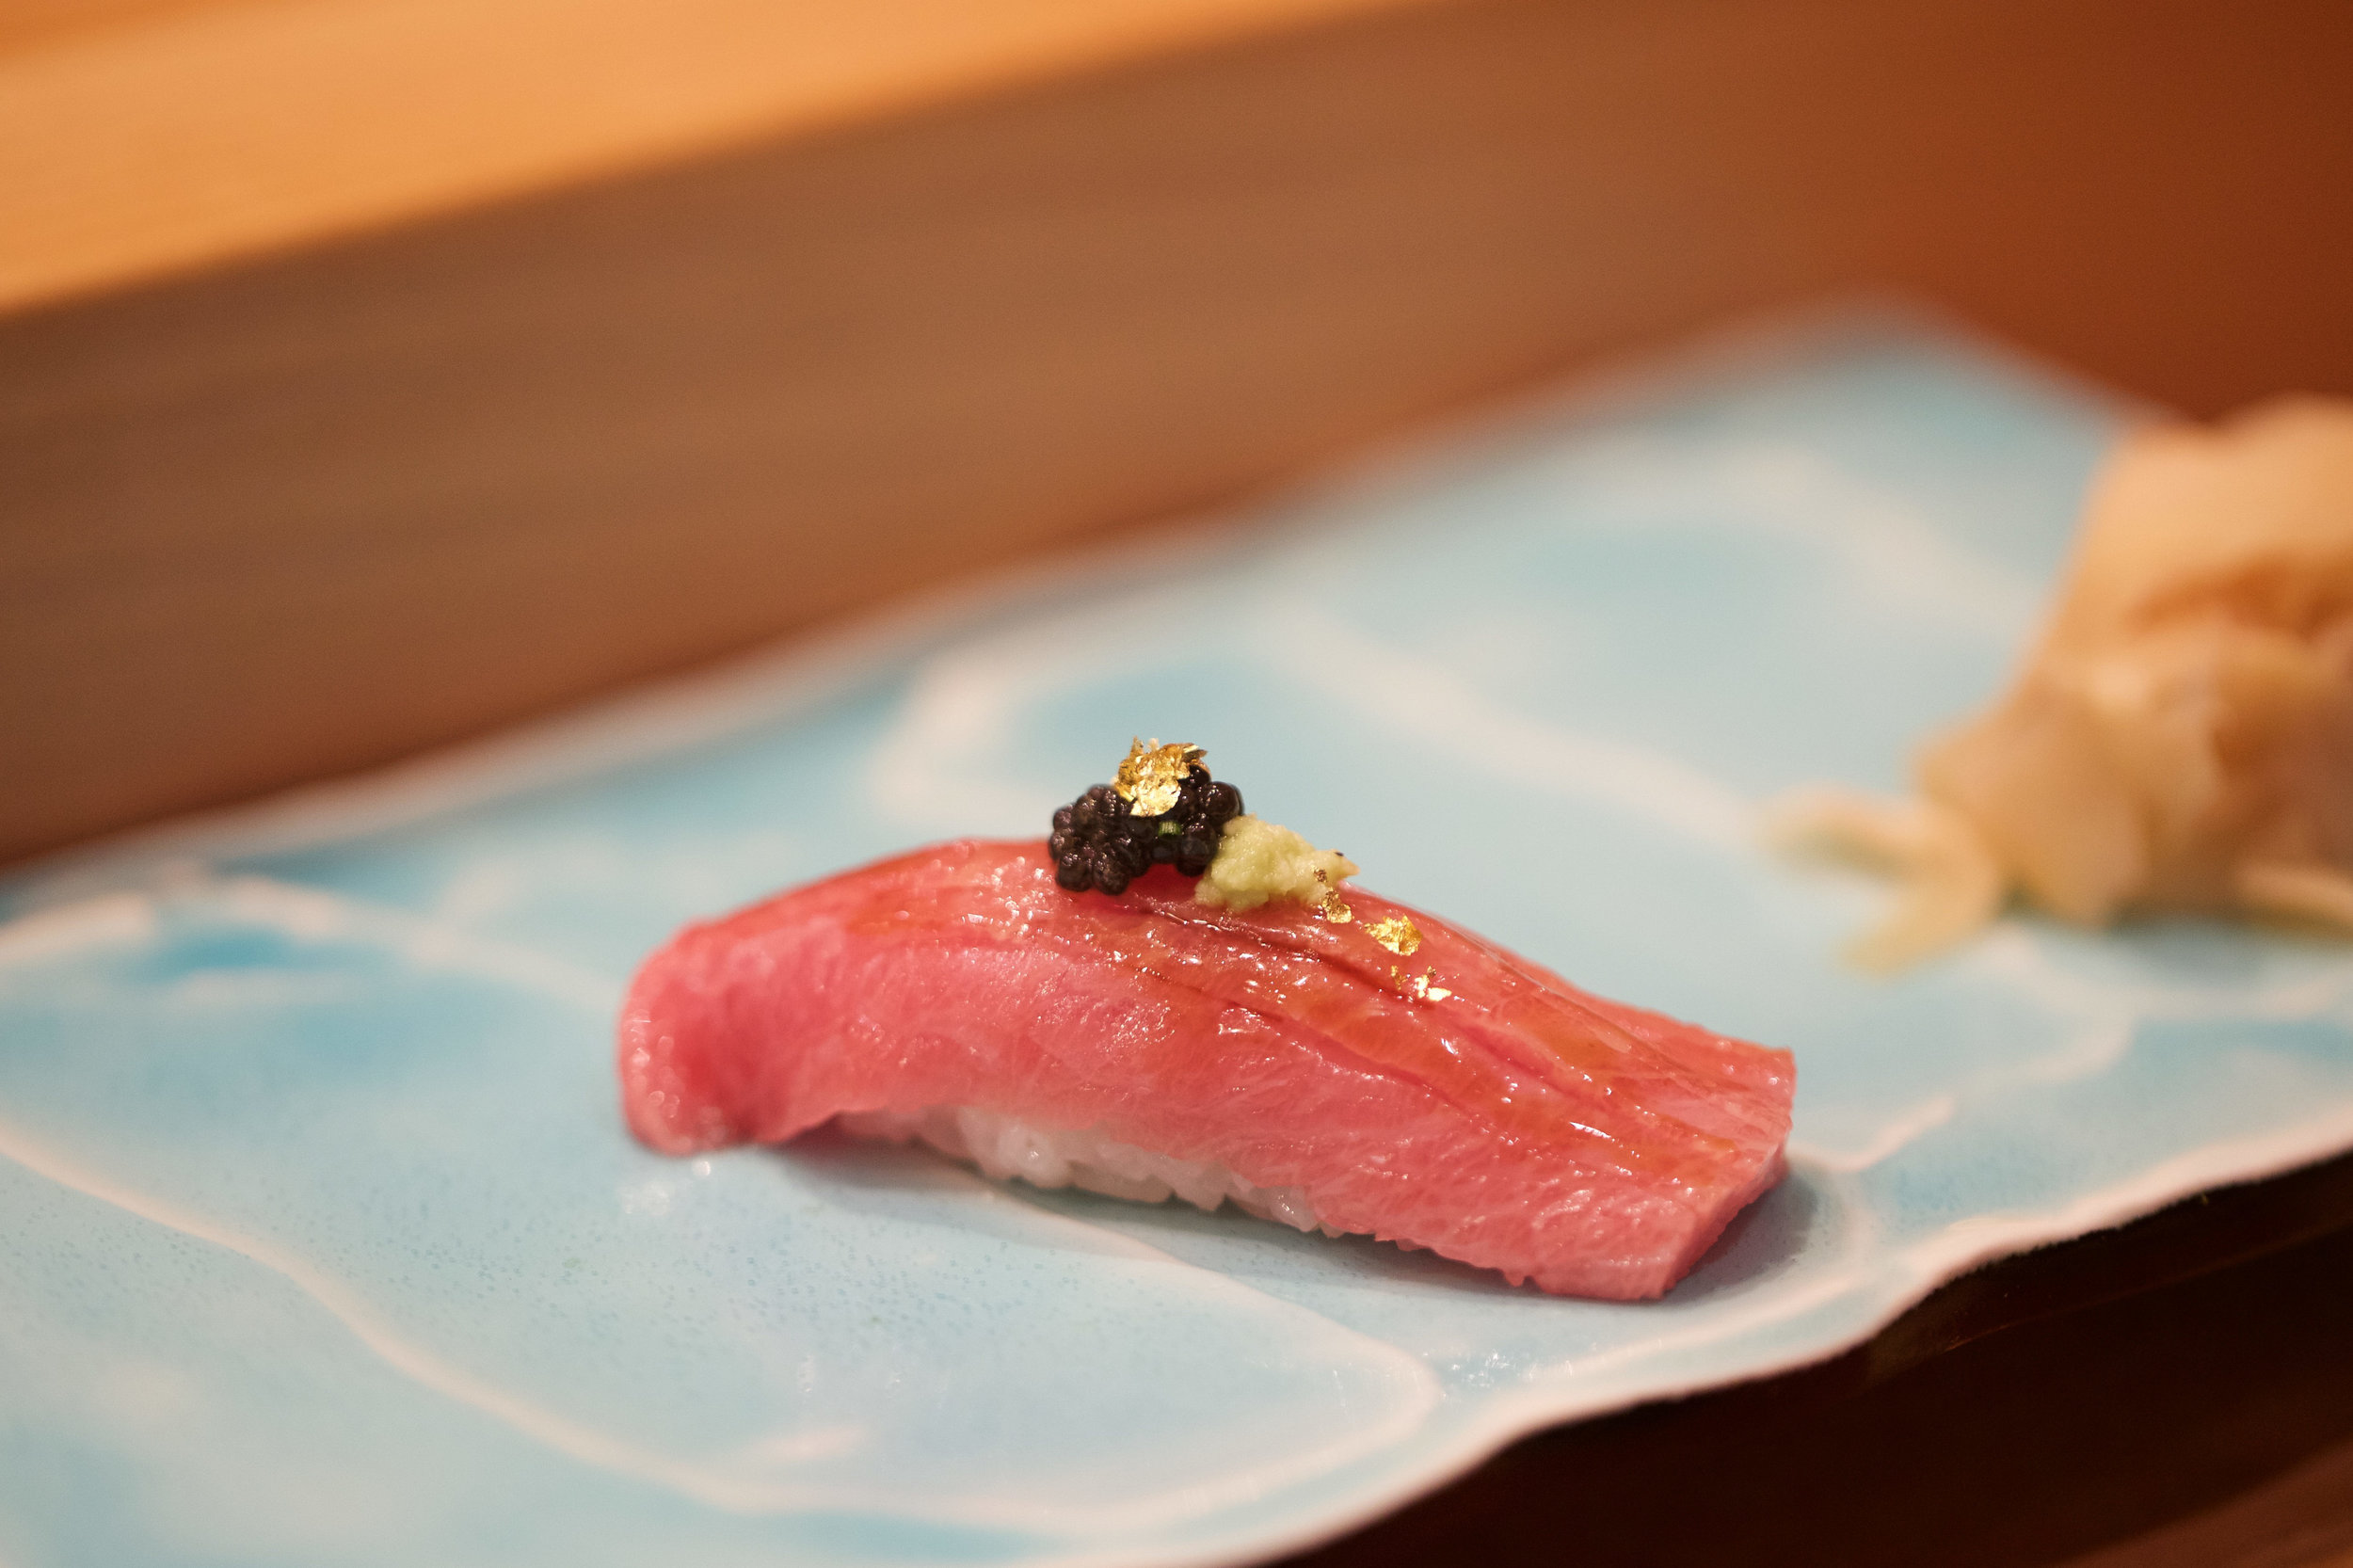 toro garnished with caviar (good) and gold leafs (useless)